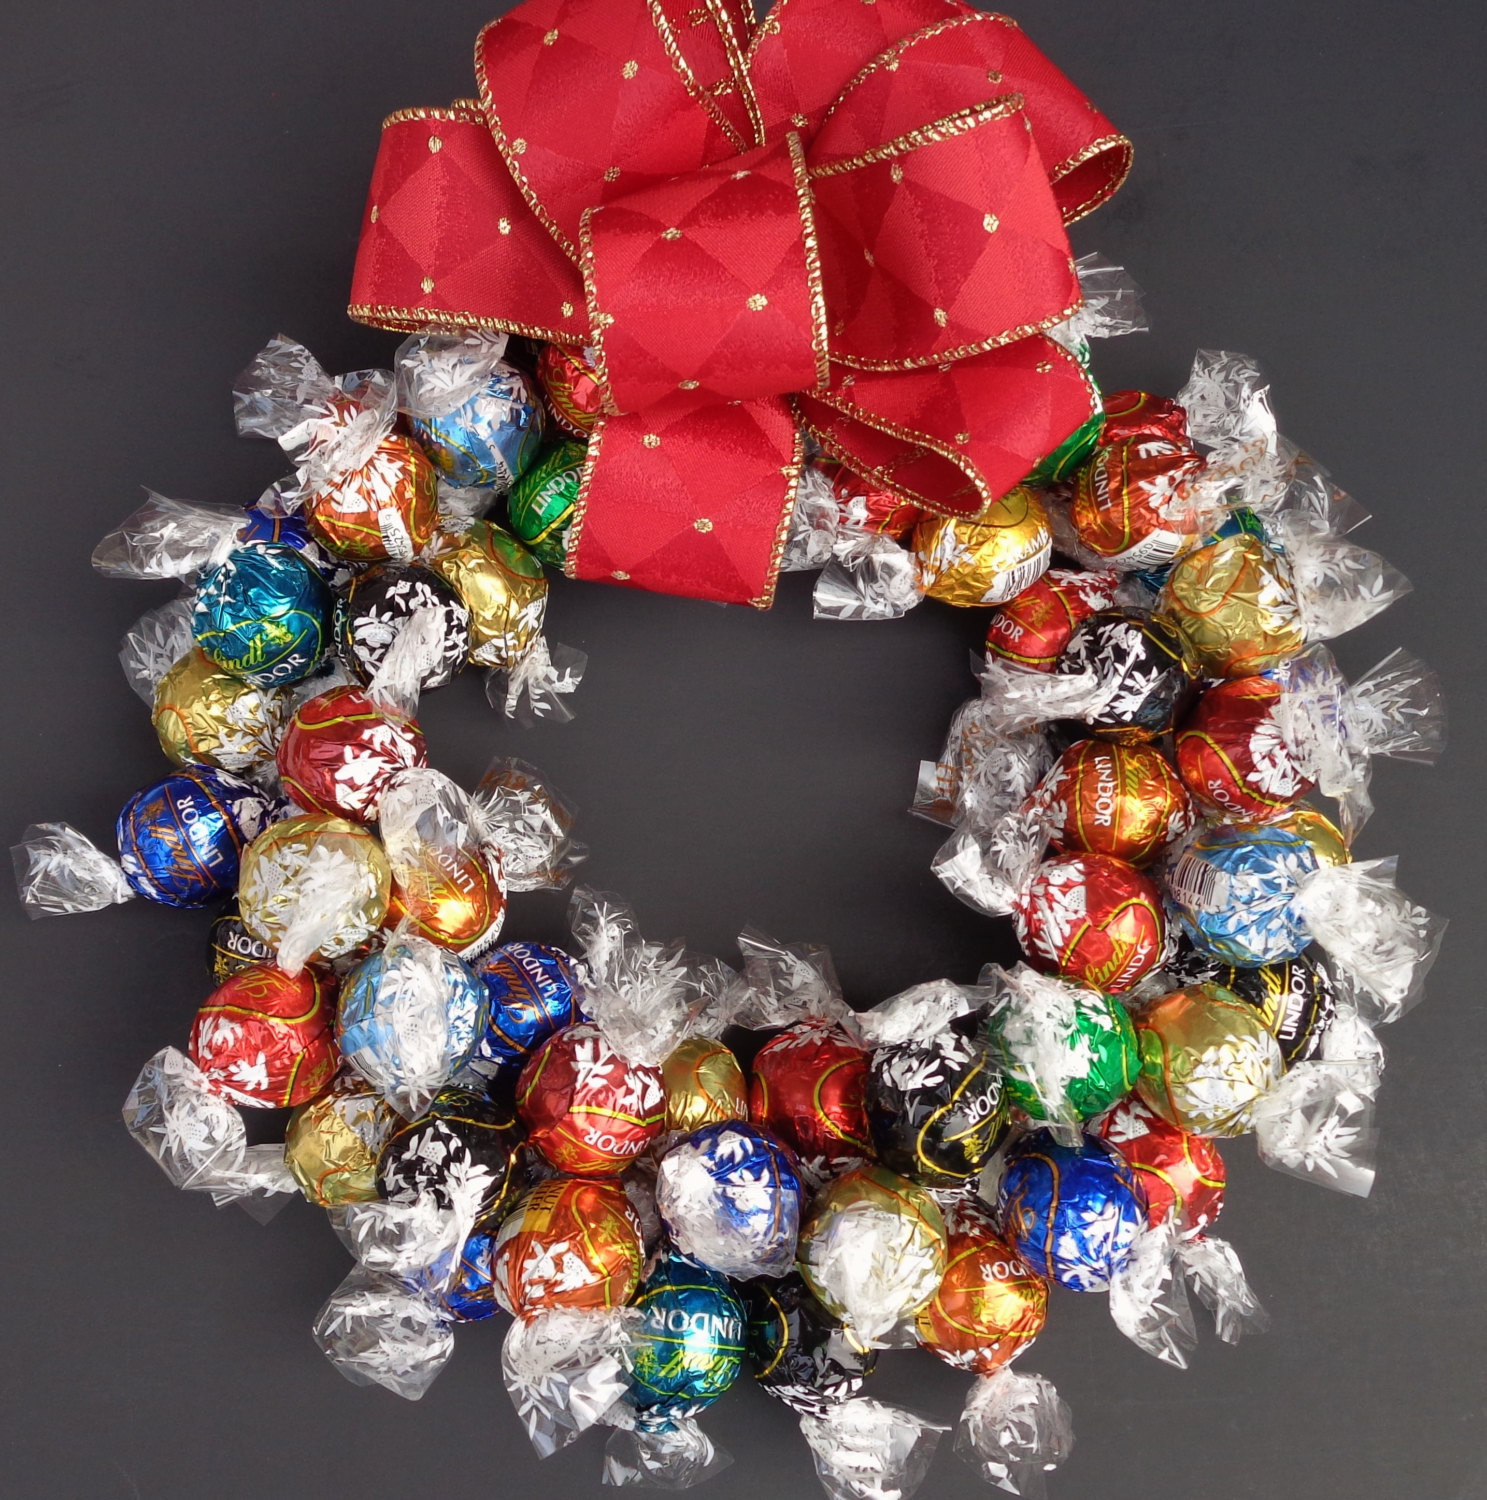 Christmas Candy Wreath  Chocolate Truffle Candy Wreath Holiday by CandyWreathsbyCarla